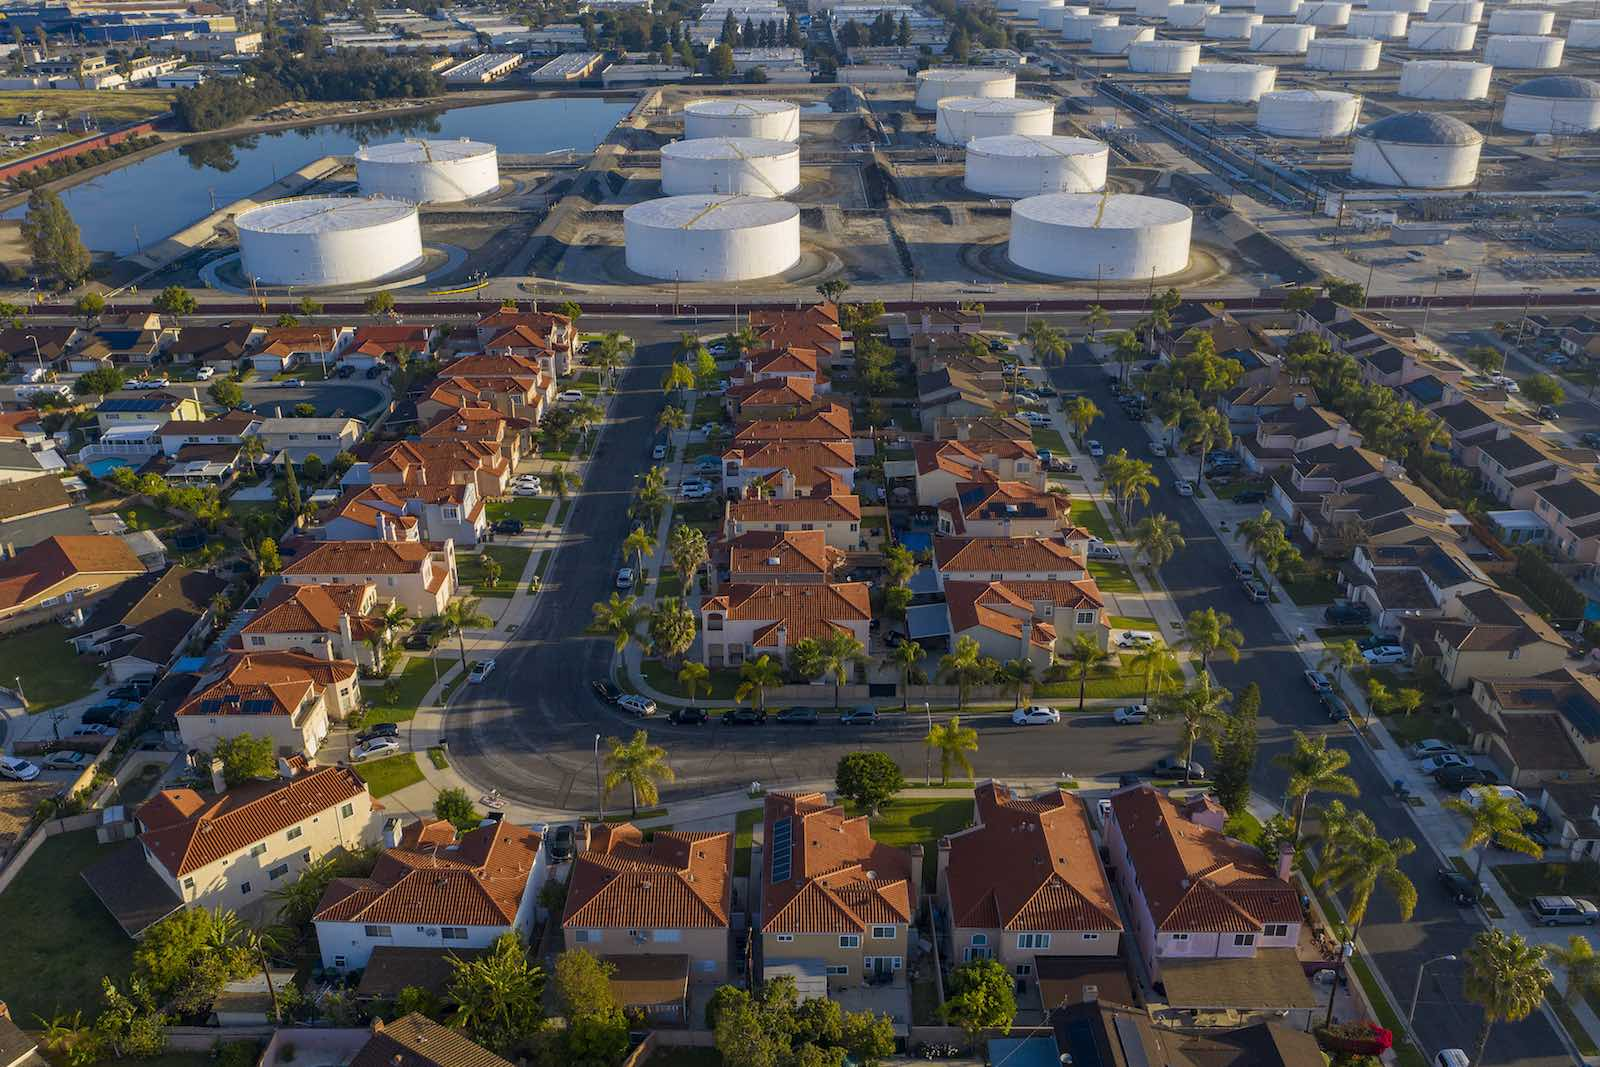 Carson, United States, and the Shell Carson Distribution Complex, which distributes fuel throughout the southern California region (David McNew/Getty Images)